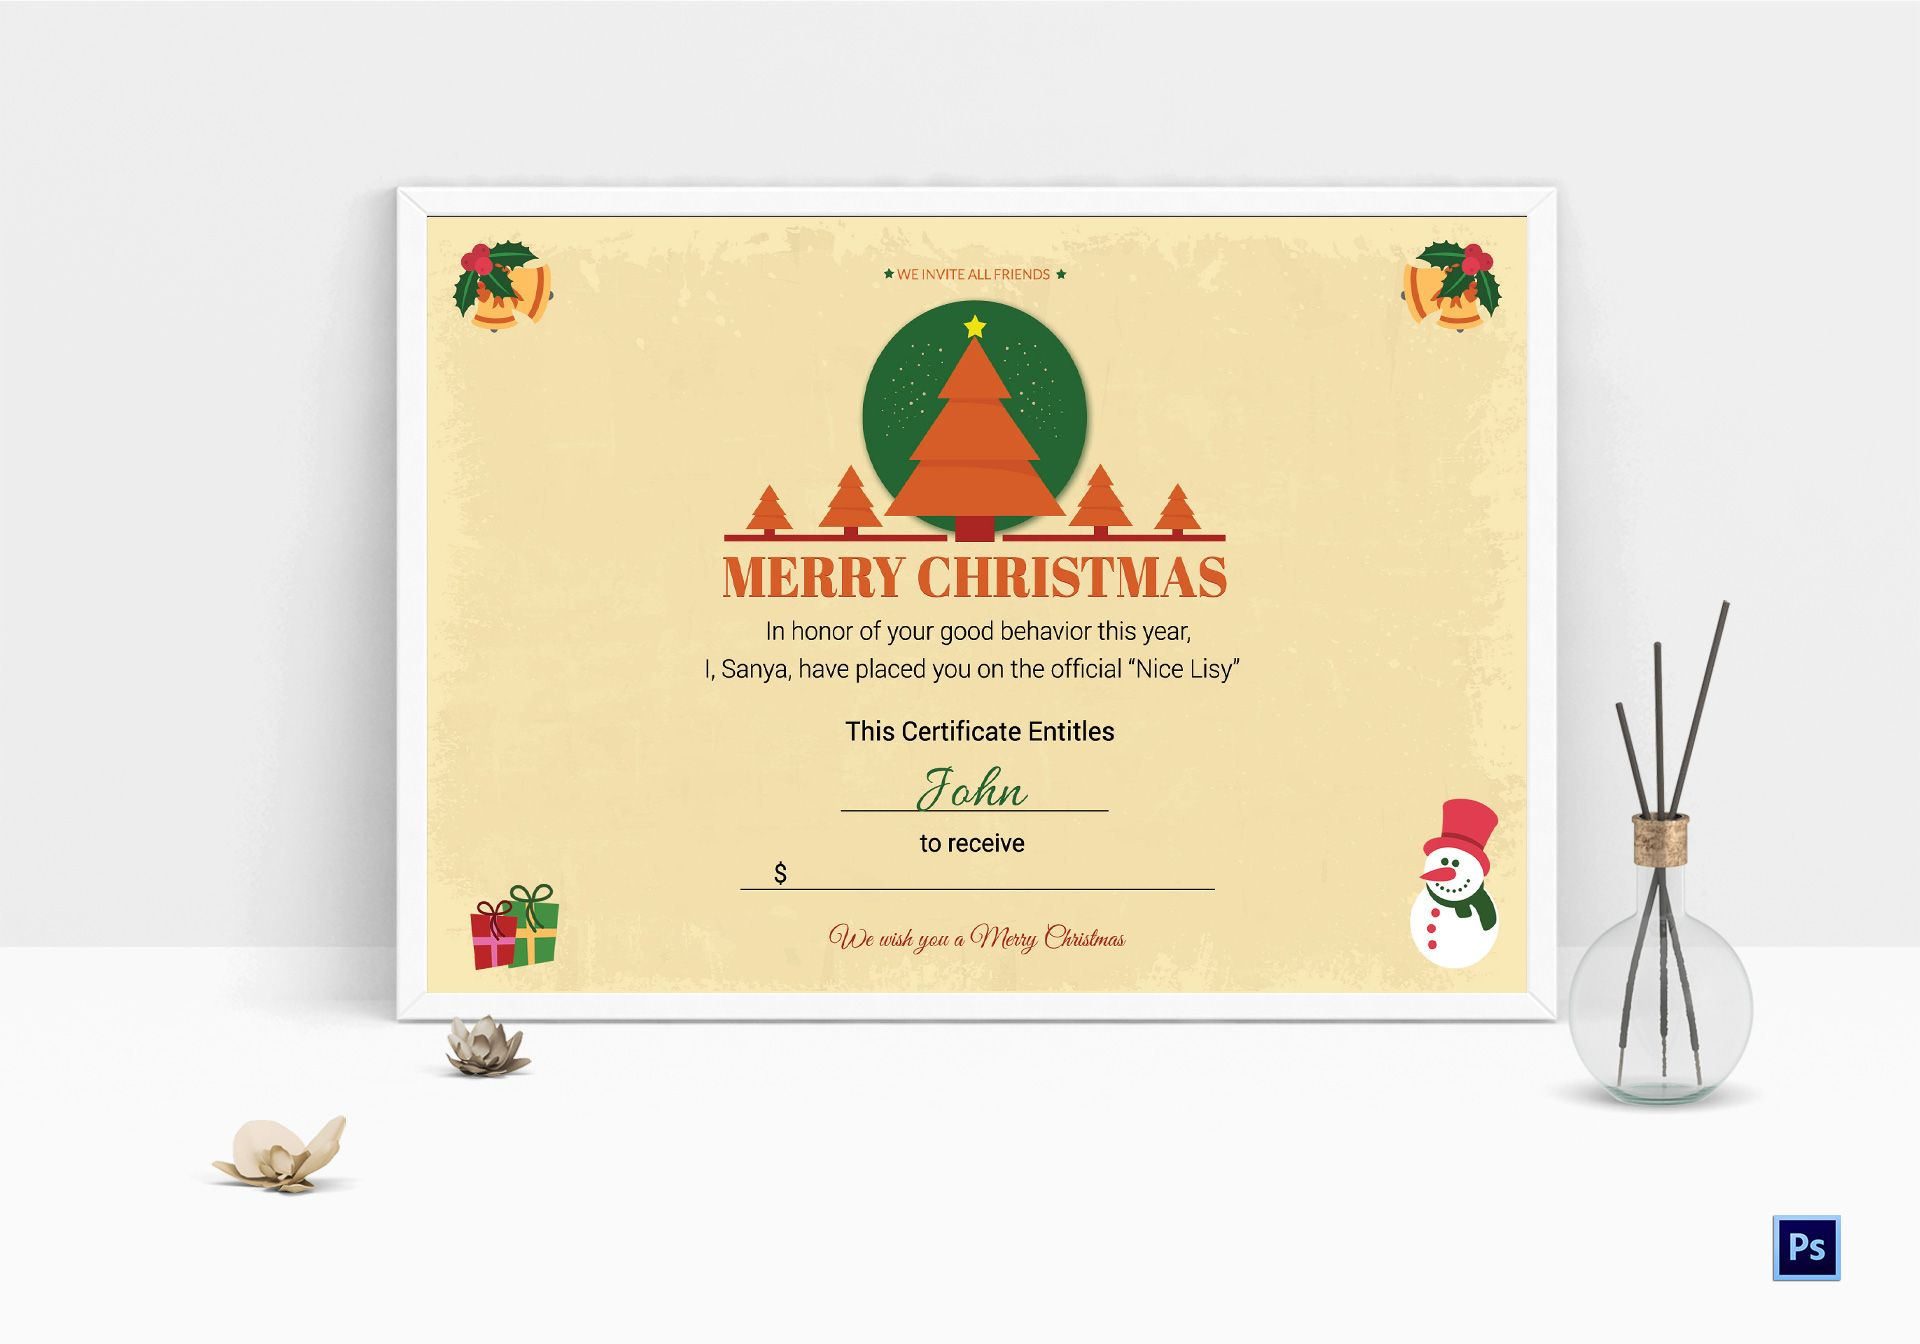 Printable Christmas Gift Certificate Template In Adobe Photoshop